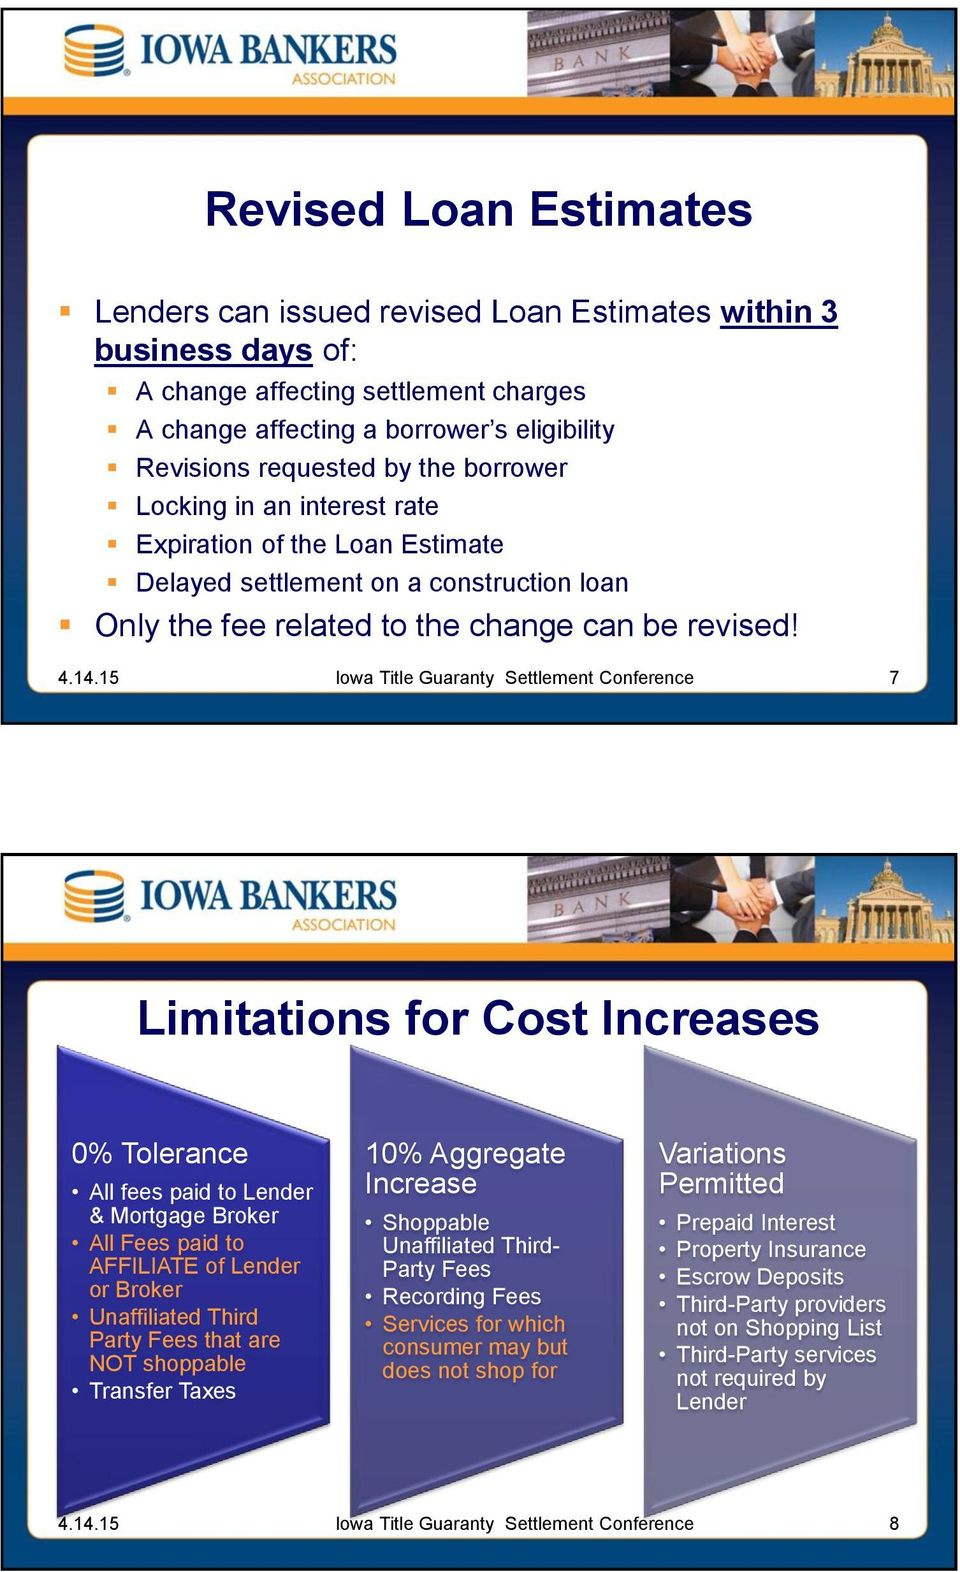 7 Limitations for Cost Increases 0% Tolerance All fees paid to Lender & Mortgage Broker All Fees paid to AFFILIATE of Lender or Broker Unaffiliated Third Party Fees that are NOT shoppable Transfer